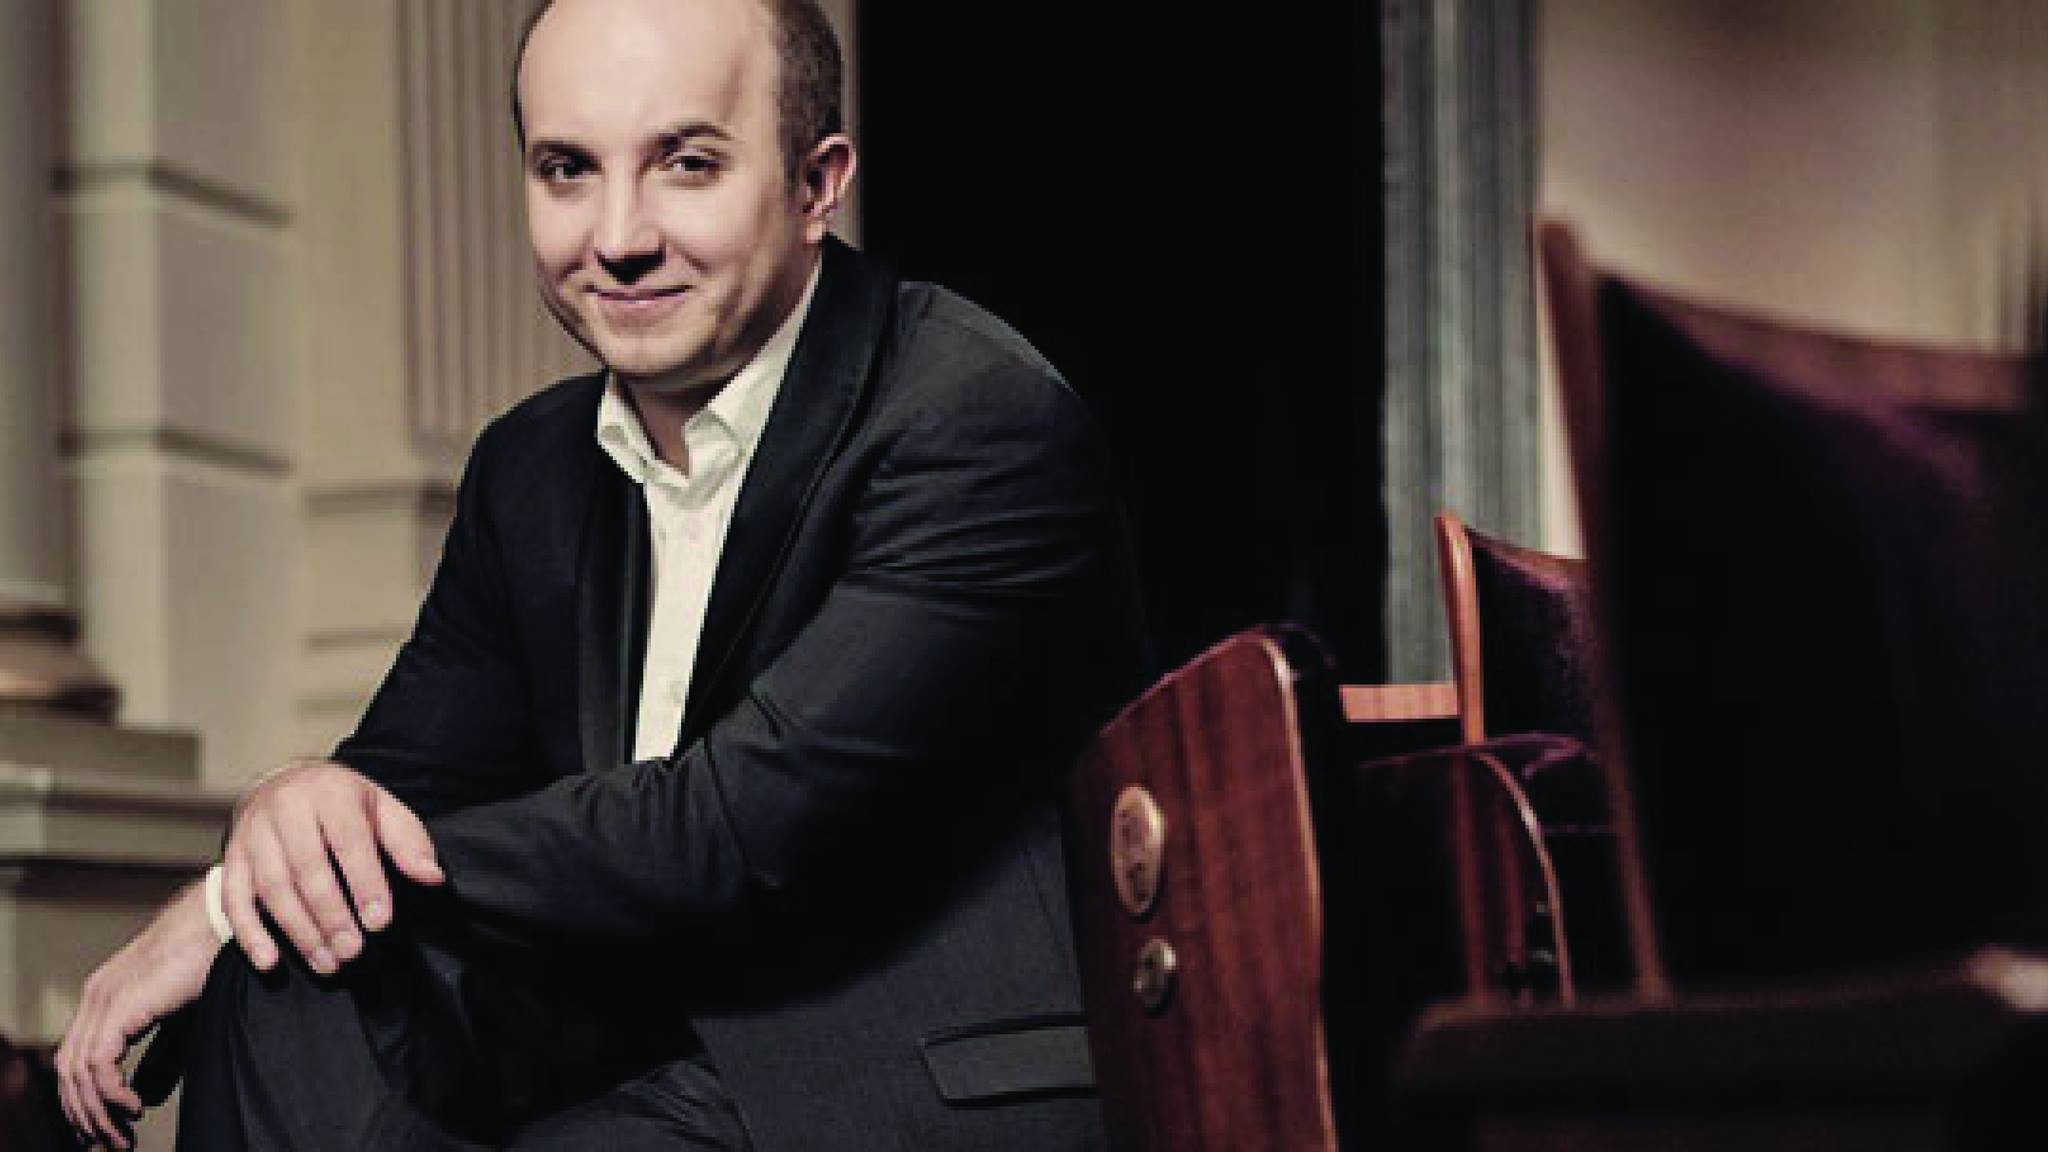 Utah Symphony: Rachmaninoff's Piano Concerto No. 2 - March 21